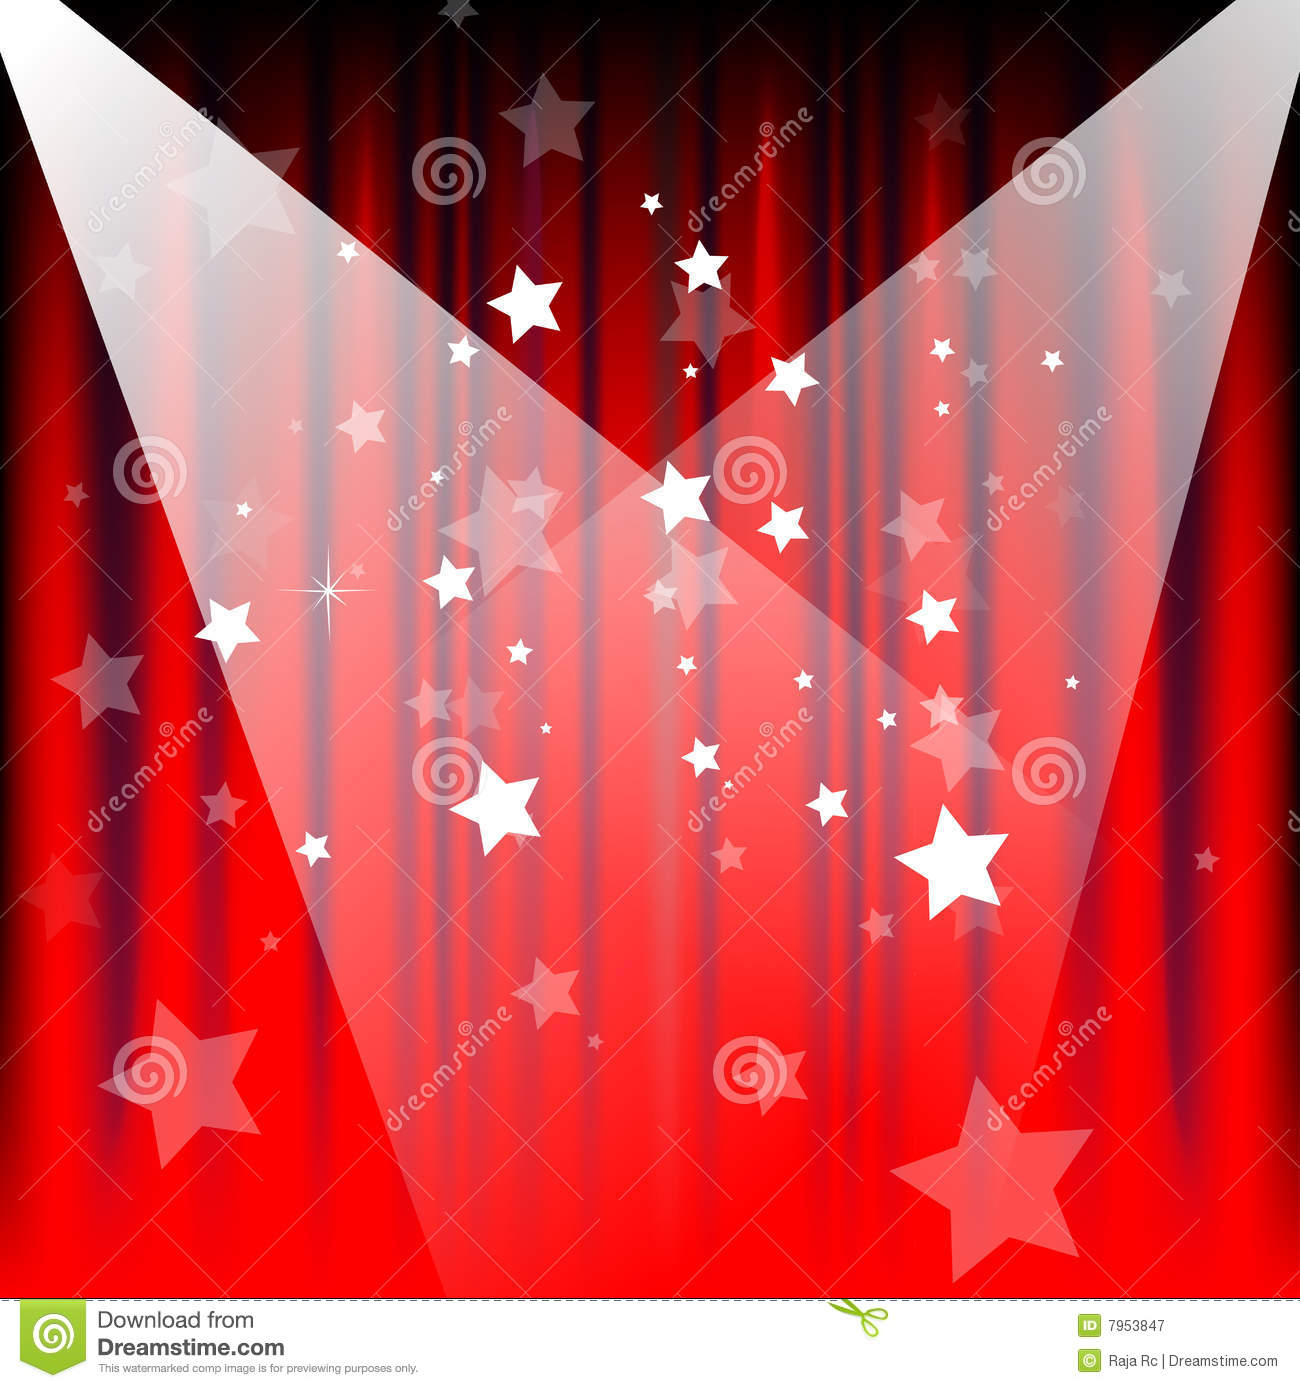 Stage Curtains Royalty Free Stock Photography - Image: 7953847